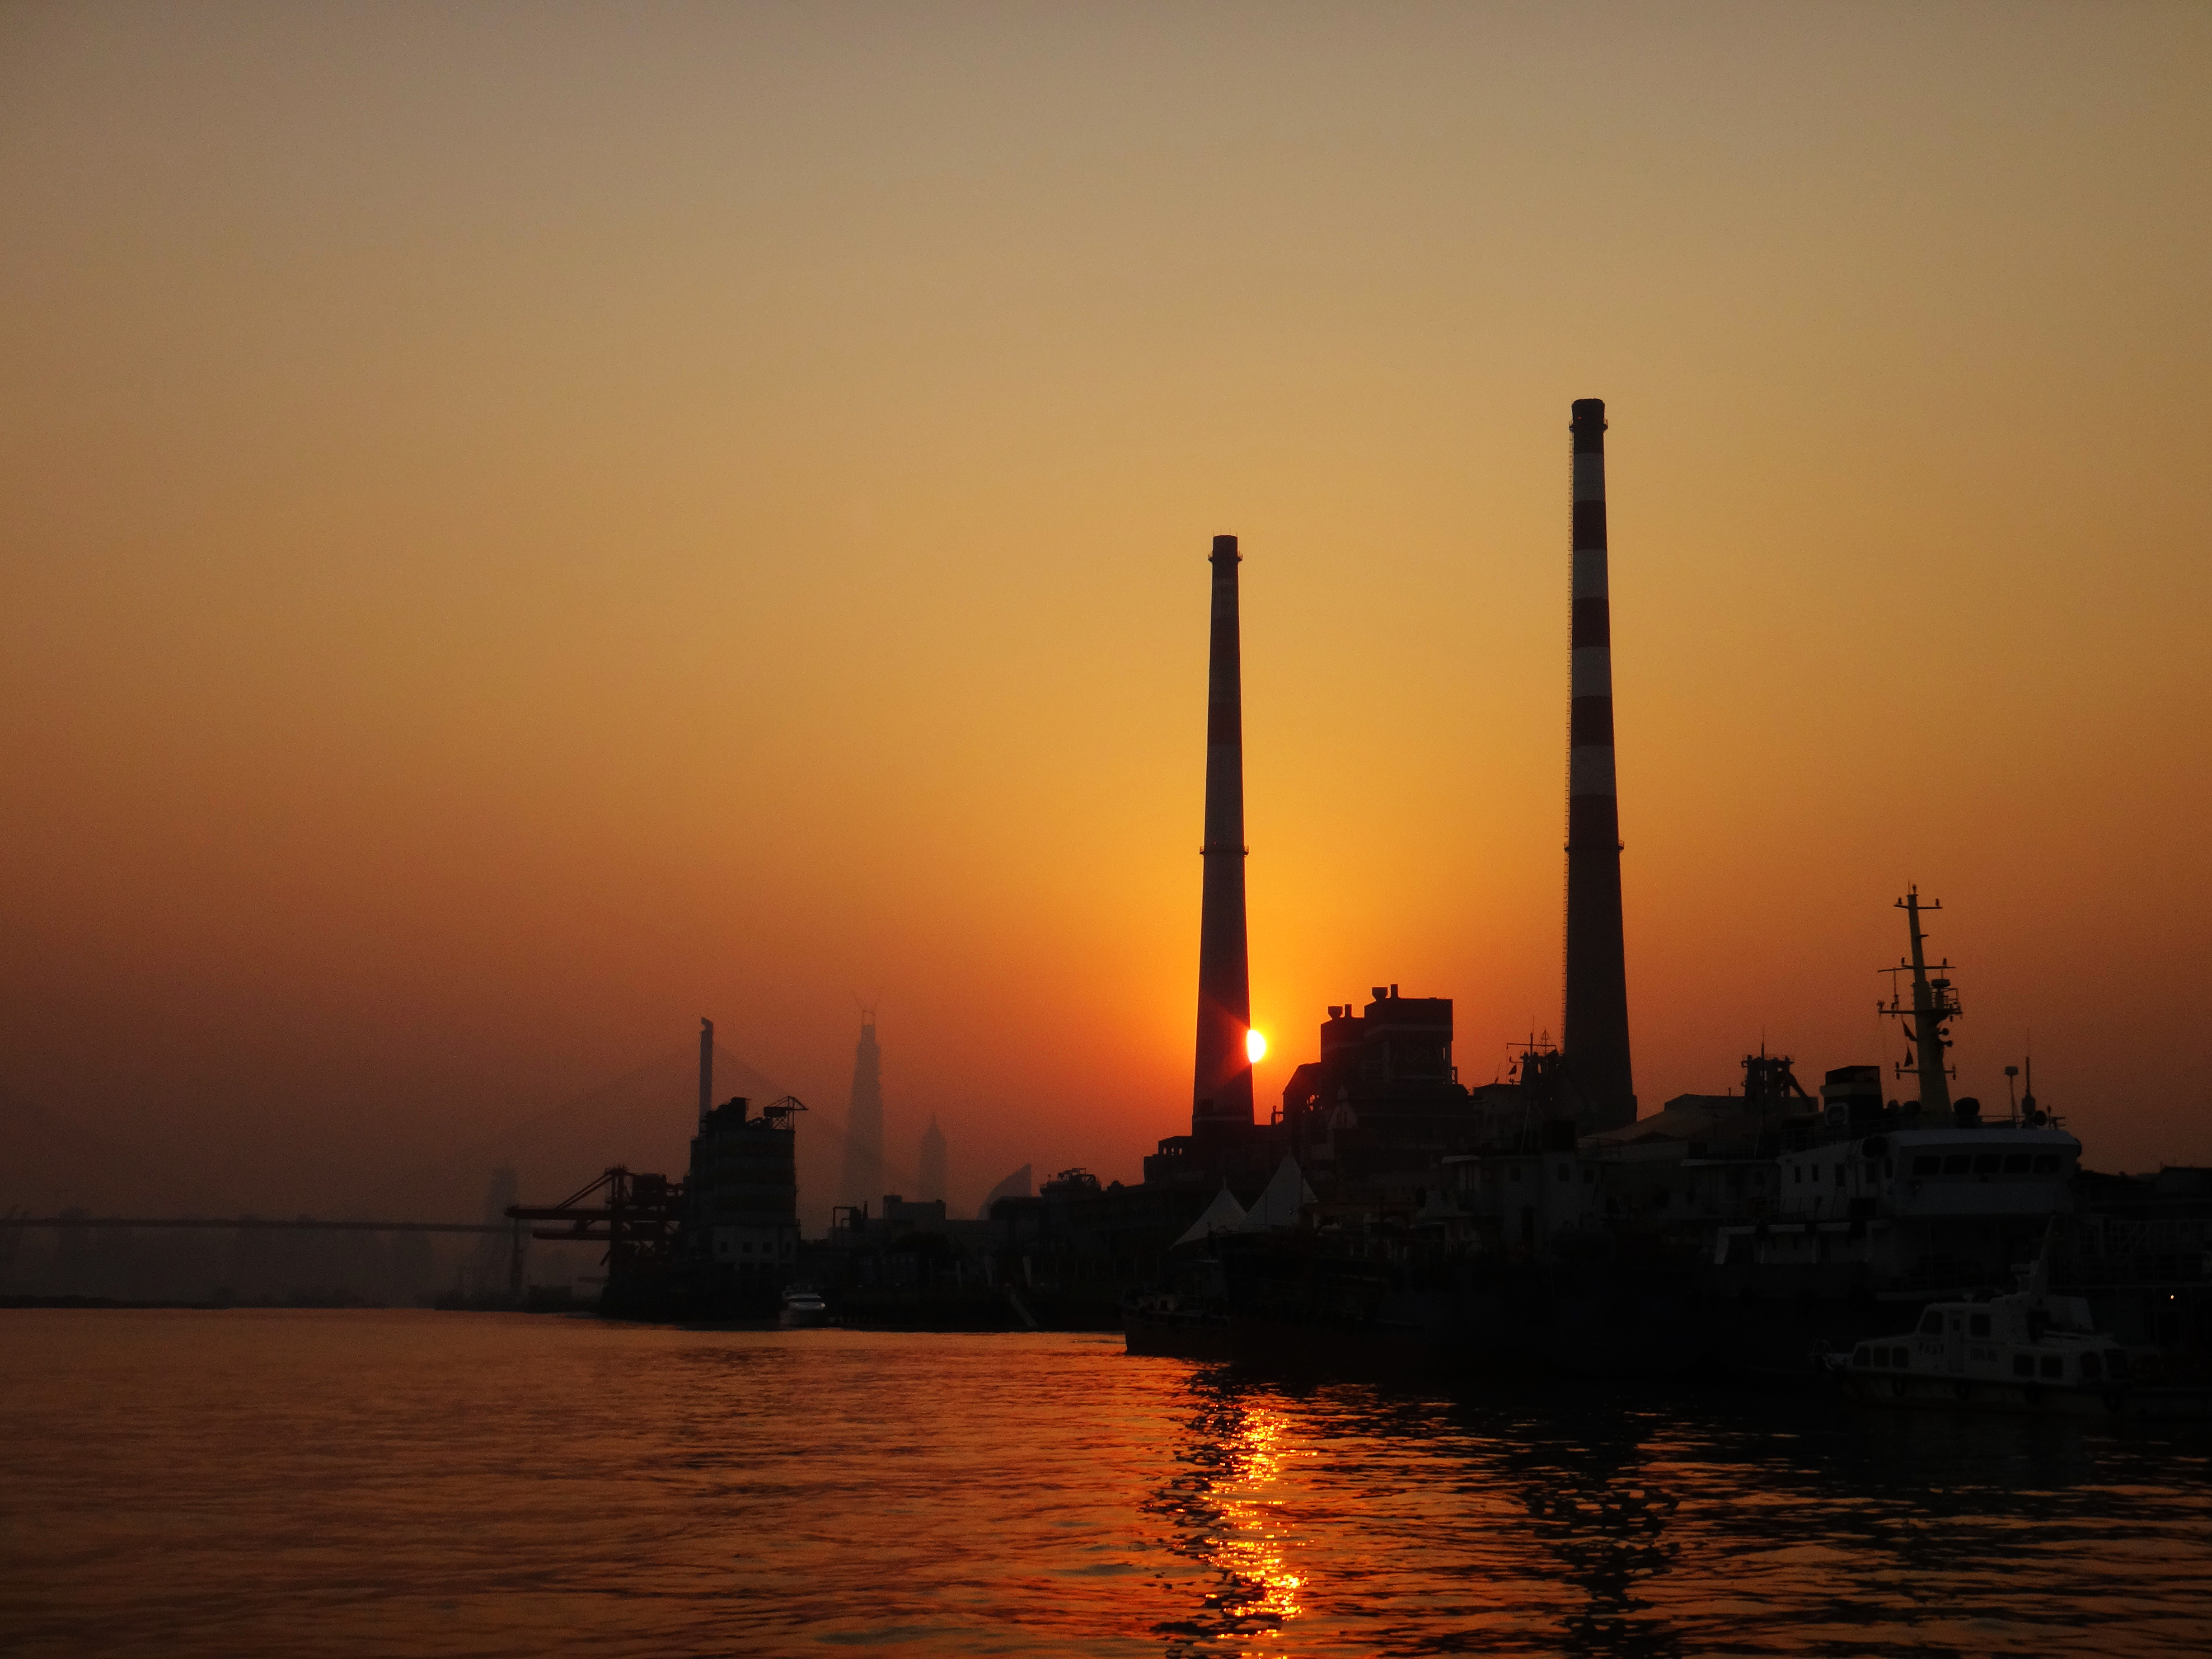 Yangshupu_Power_Plant_at_sunset